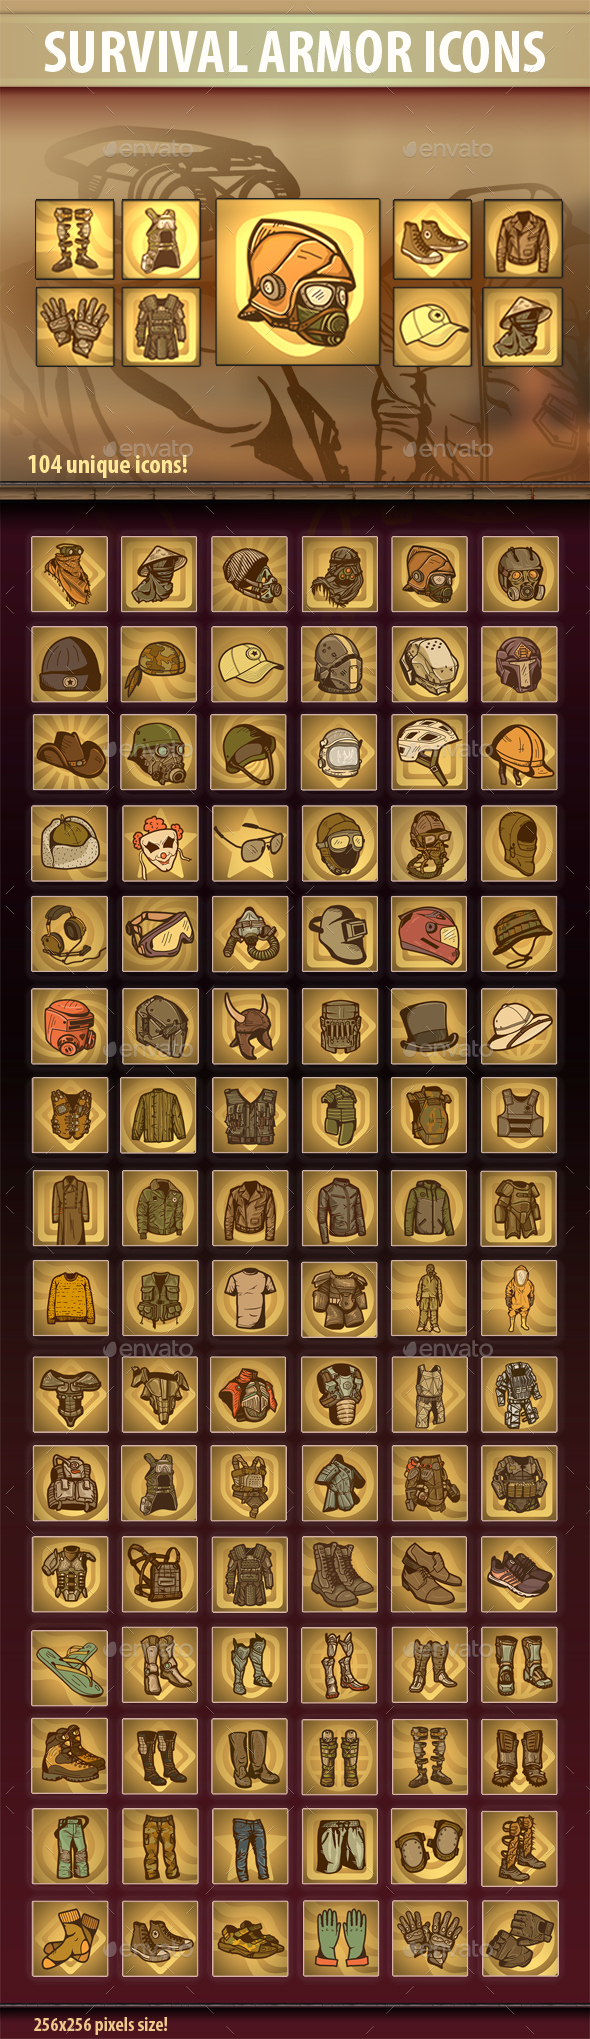 Survival Armor Icons - Miscellaneous Game Assets